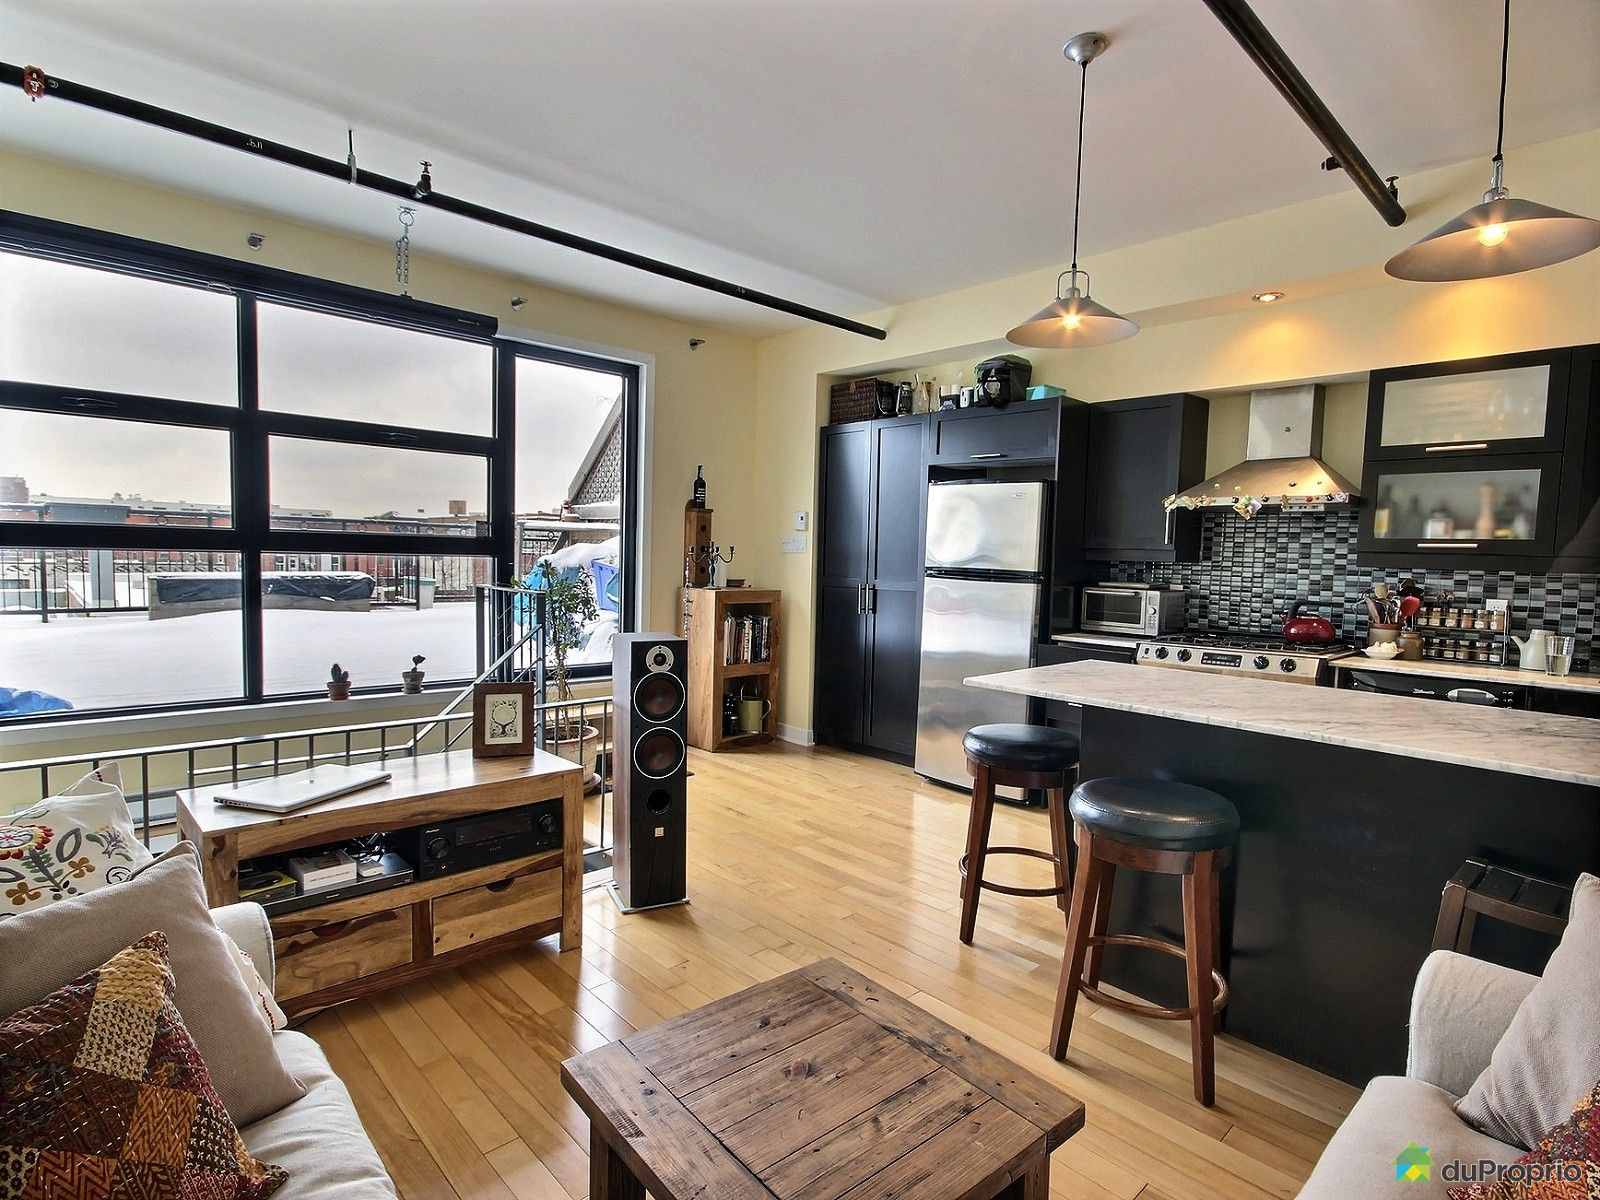 Loft sold in Montreal DuProprio 686372 #664631